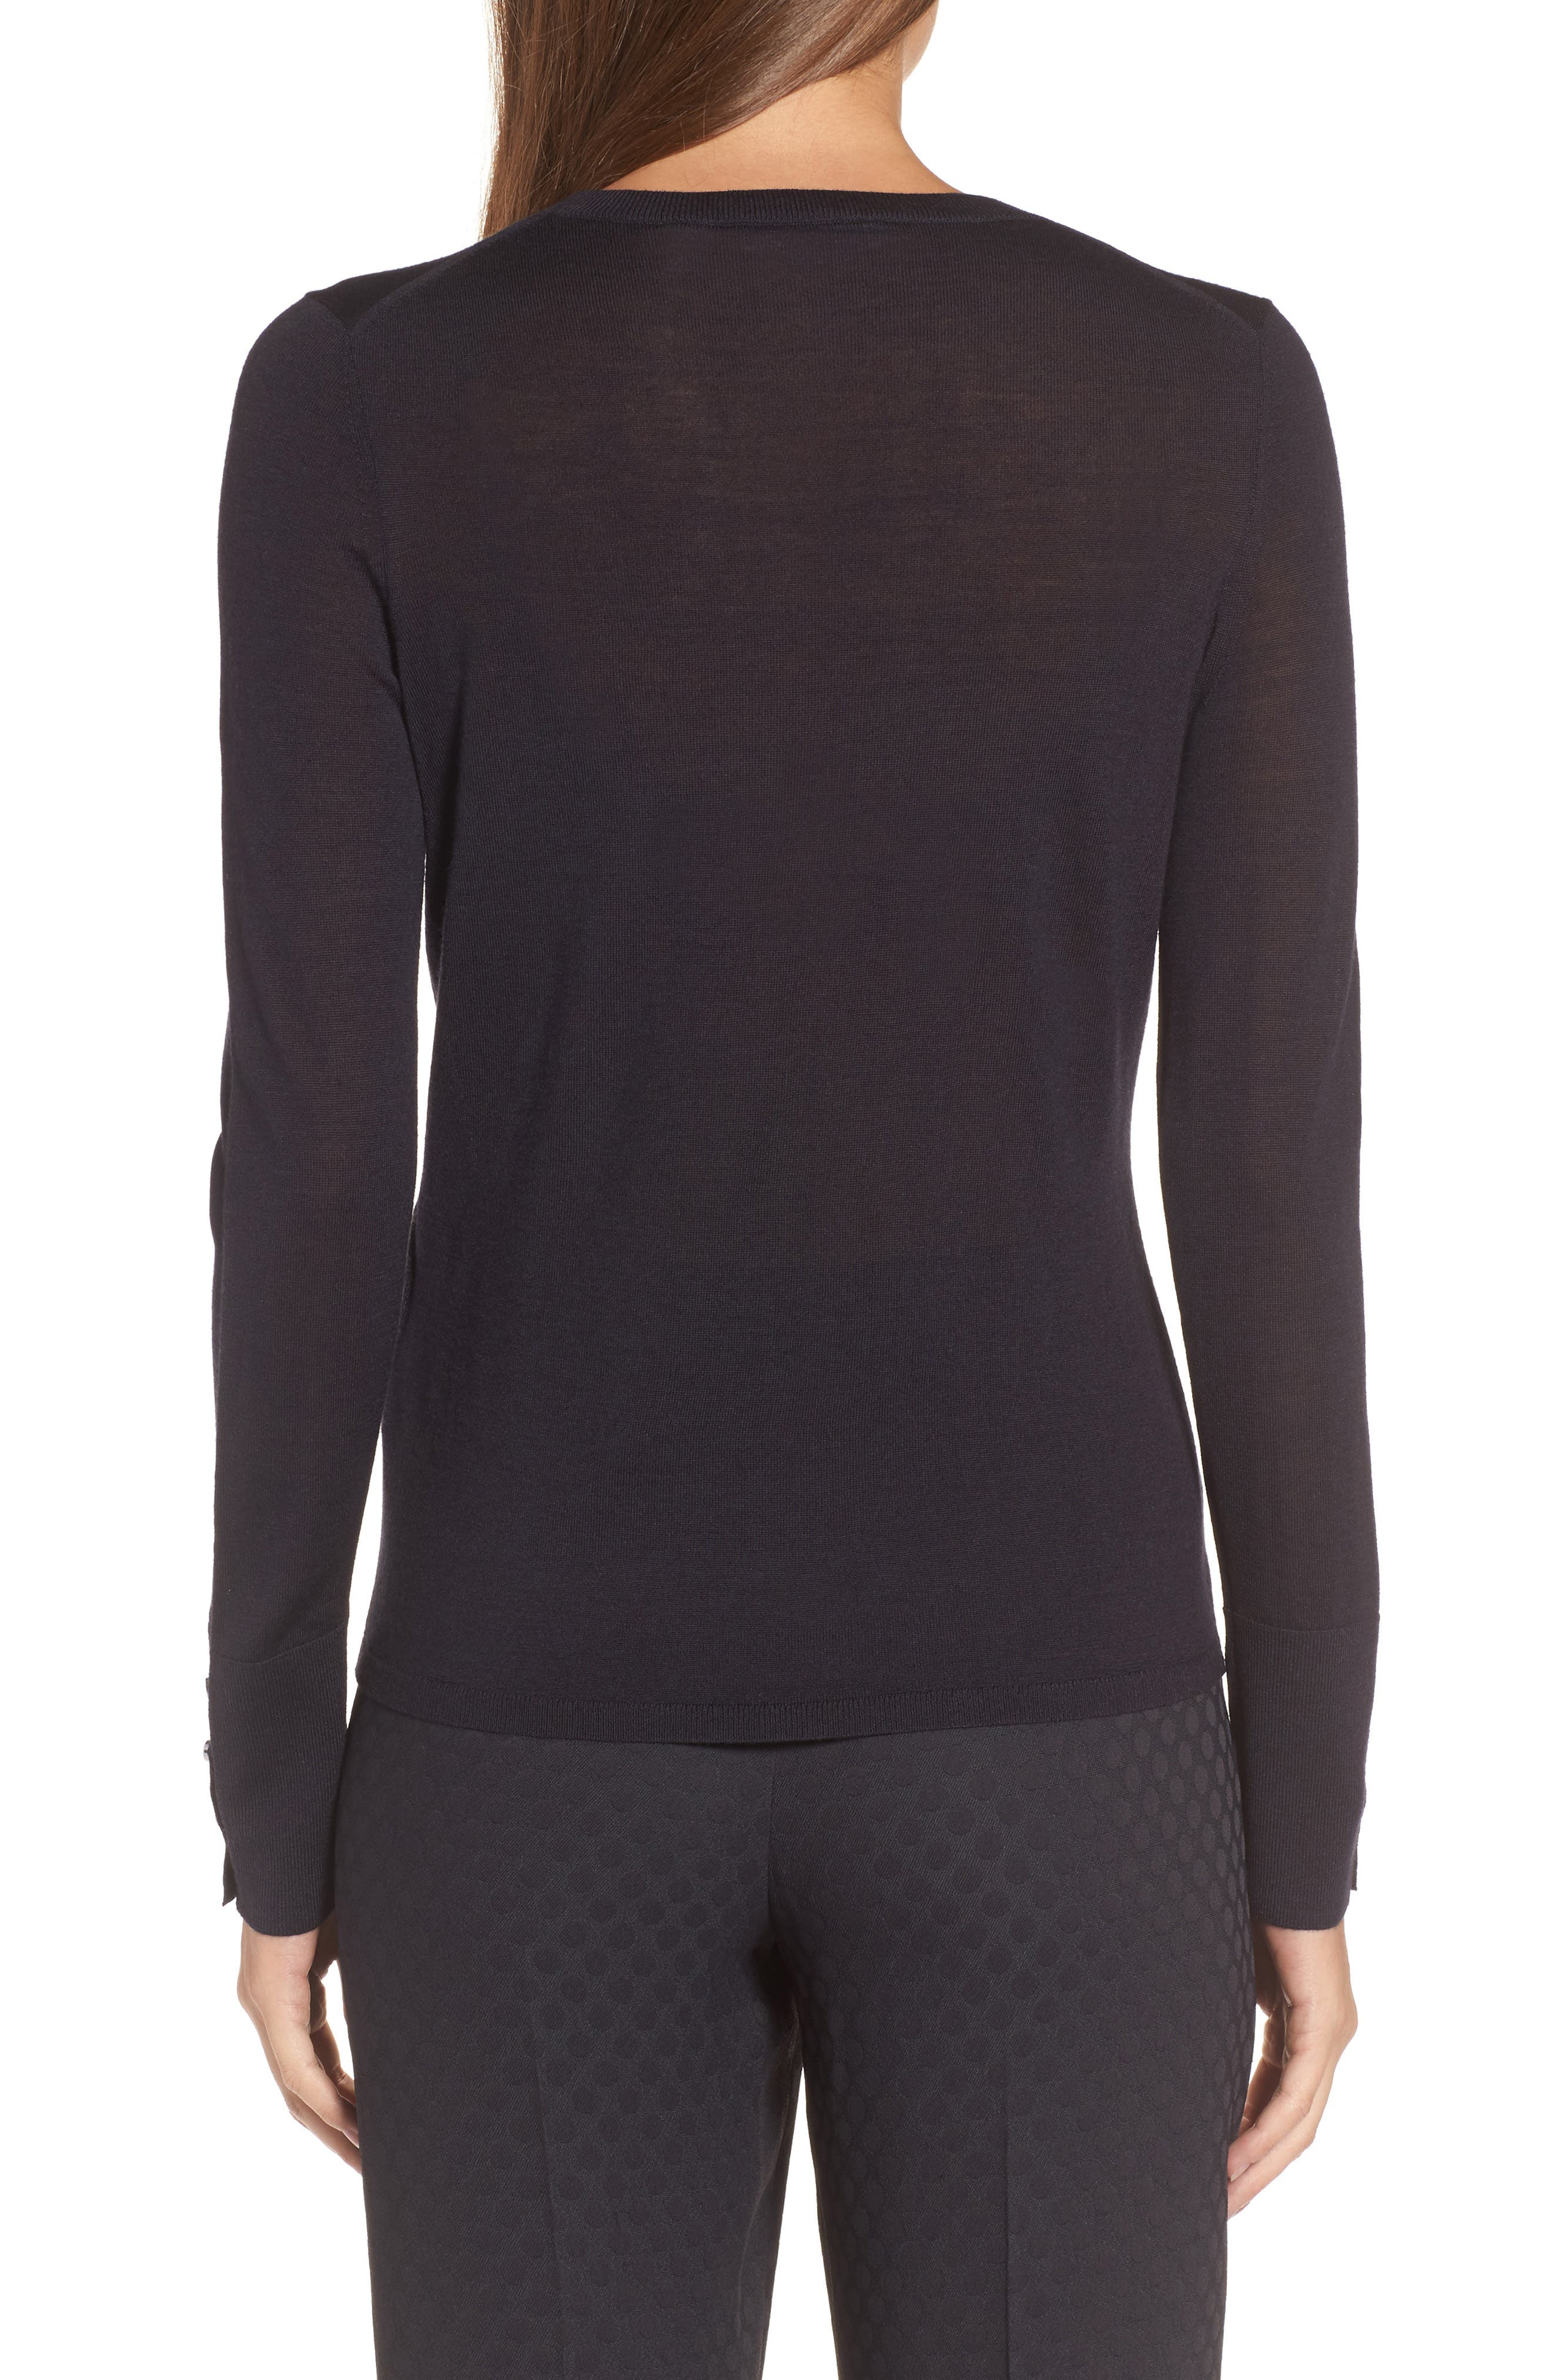 Alternate Image 2  - BOSS Frankie Cuff Detail Wool Sweater (Nordstrom Exclusive)